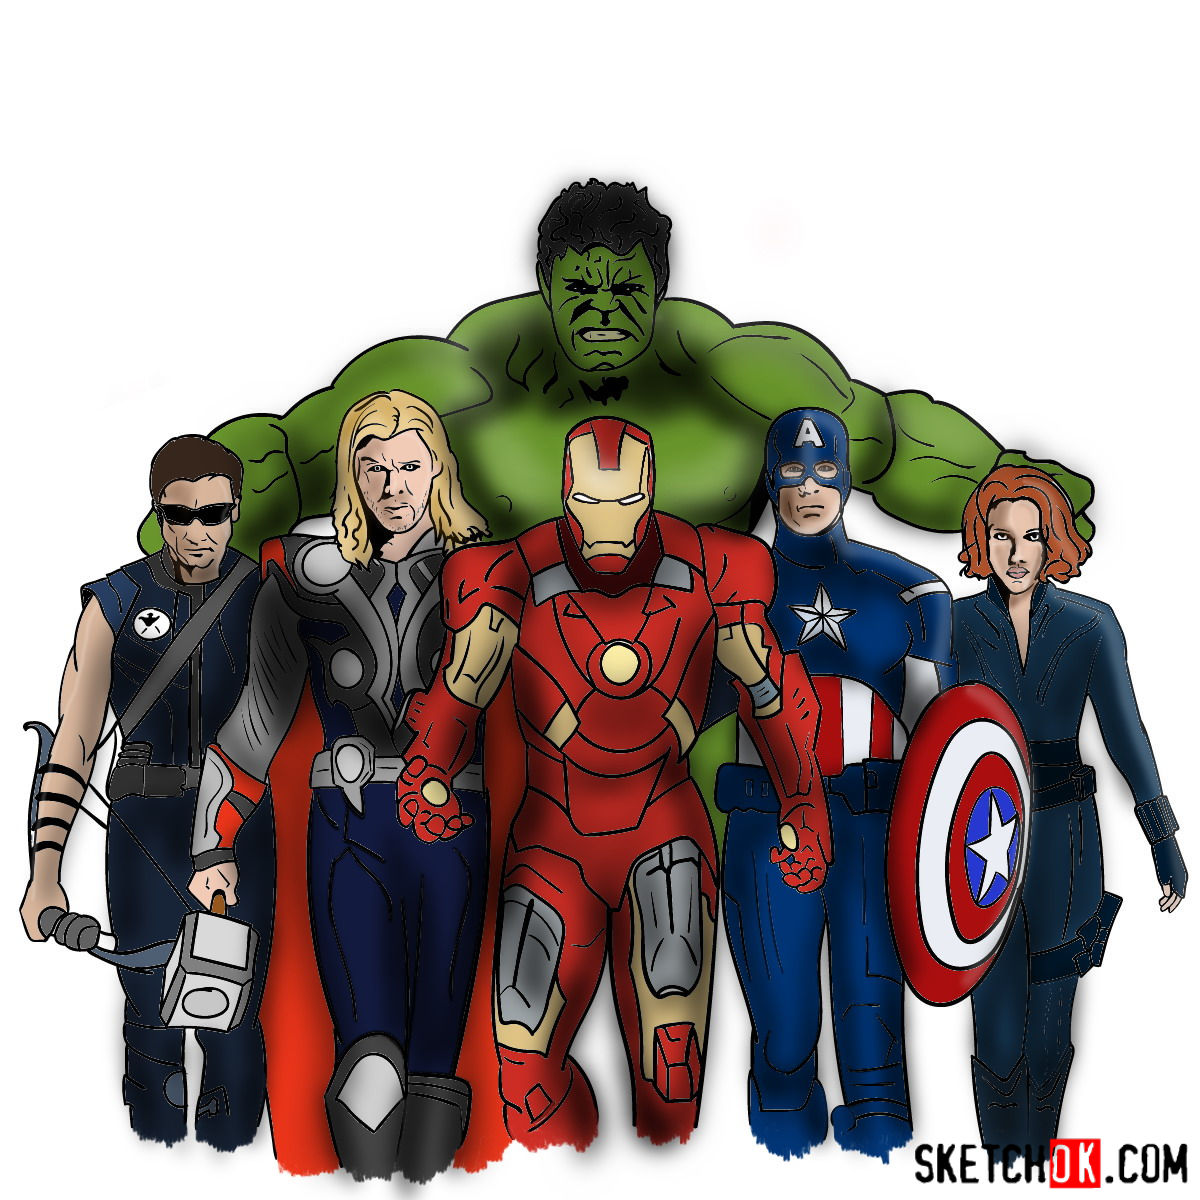 Avengers clipart superhero group. How to draw the